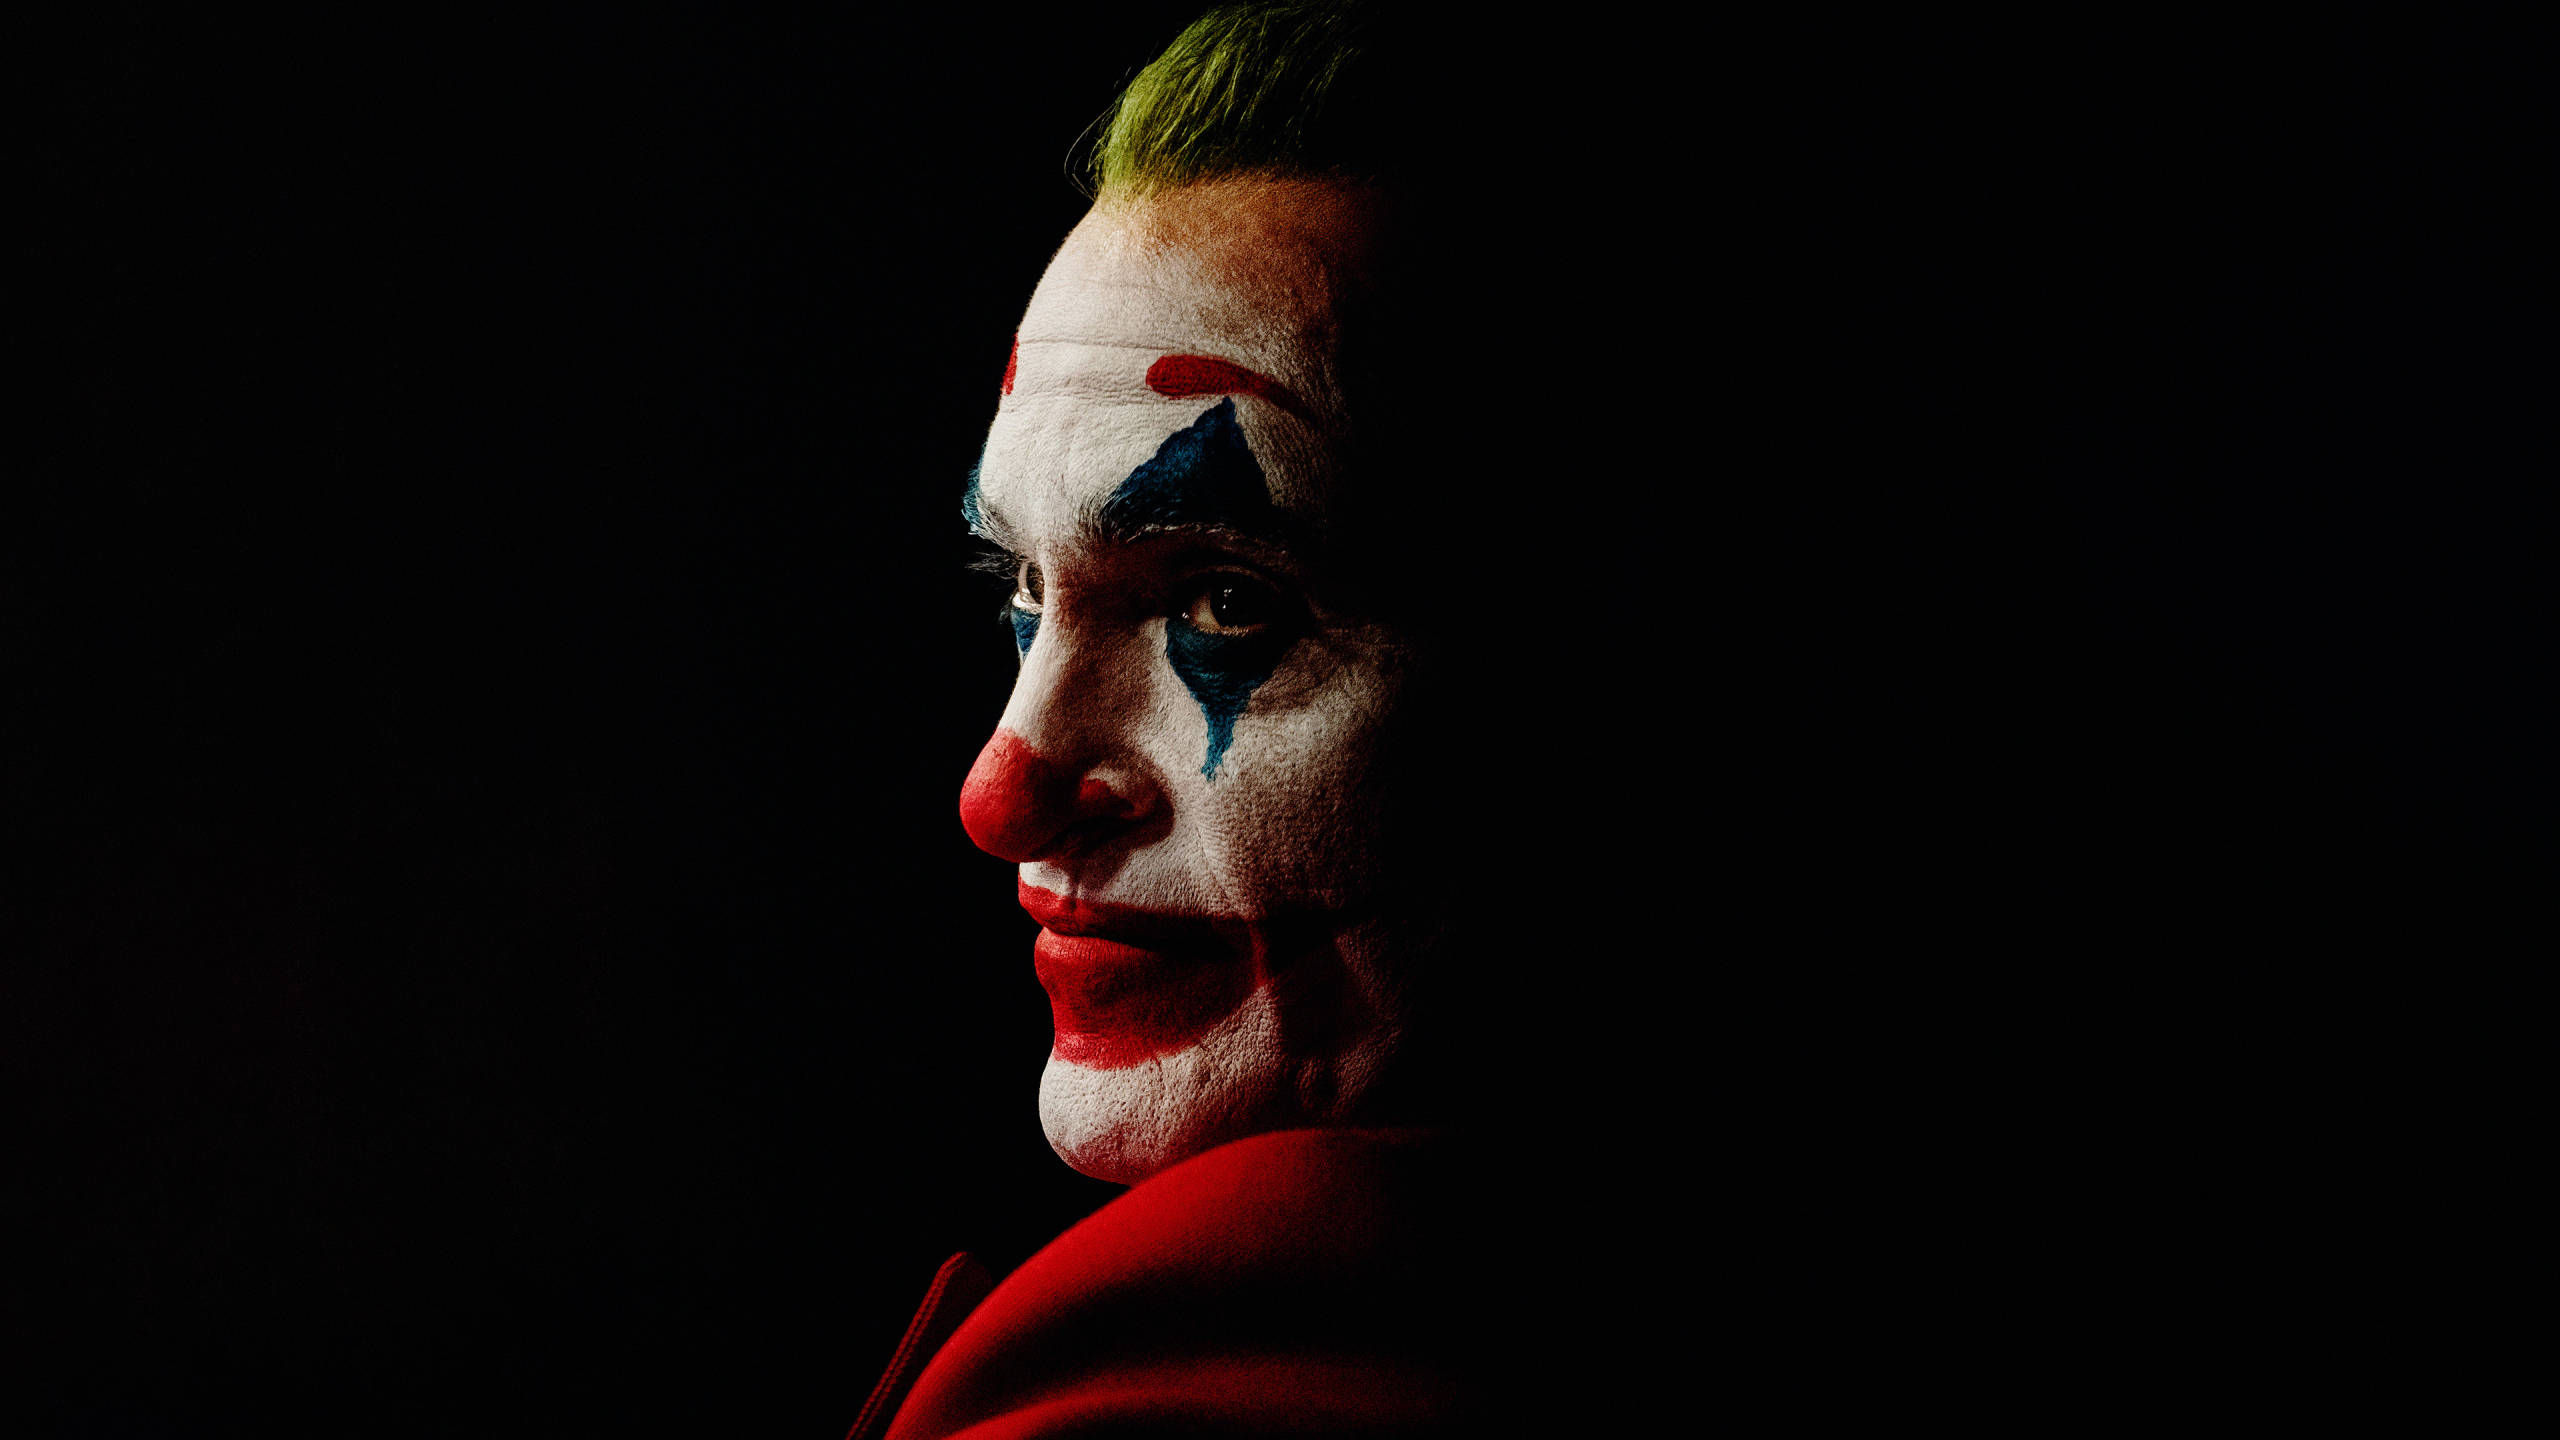 2560x1440 Joker Movie 4k 1440p Resolution Wallpaper Hd Movies 4k Wallpapers Images Photos And Background